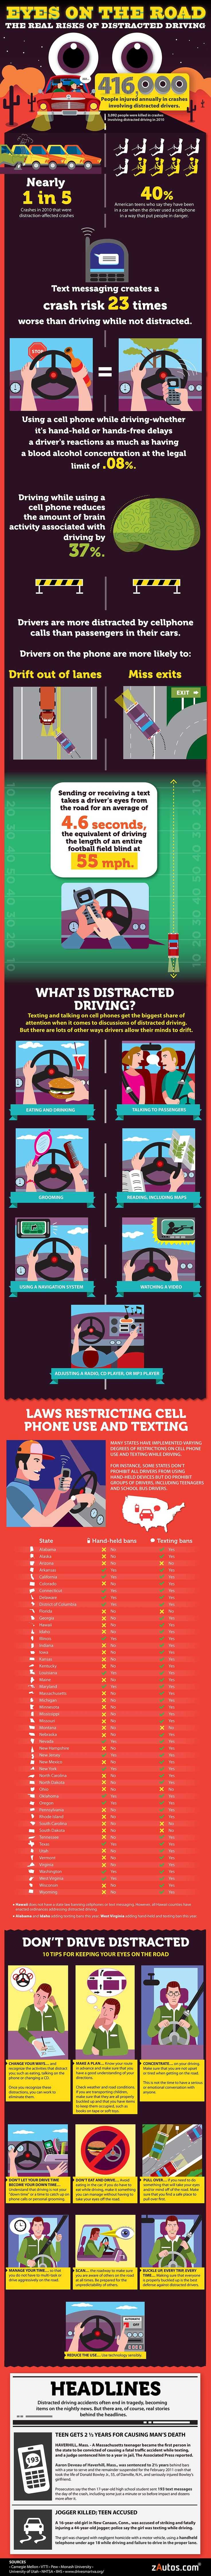 Distracted Driving Infographic: Dangers of #DistractedDriving